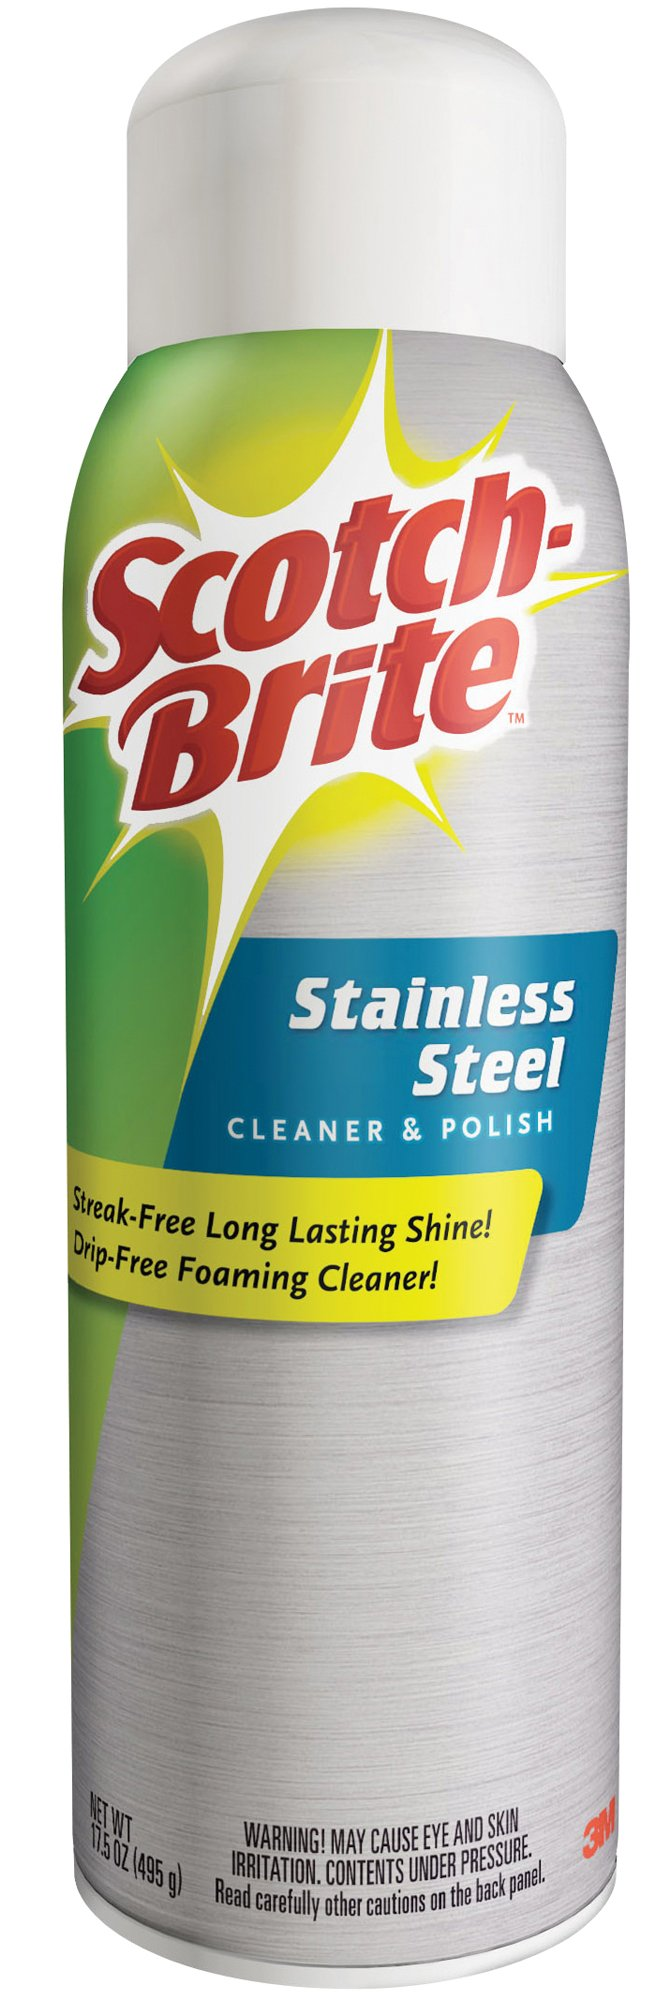 Scotch-Brite Stainless Steel Cleaner and Polish, 6 Cans, 17.5-Ounces, (105 Ounces Total)